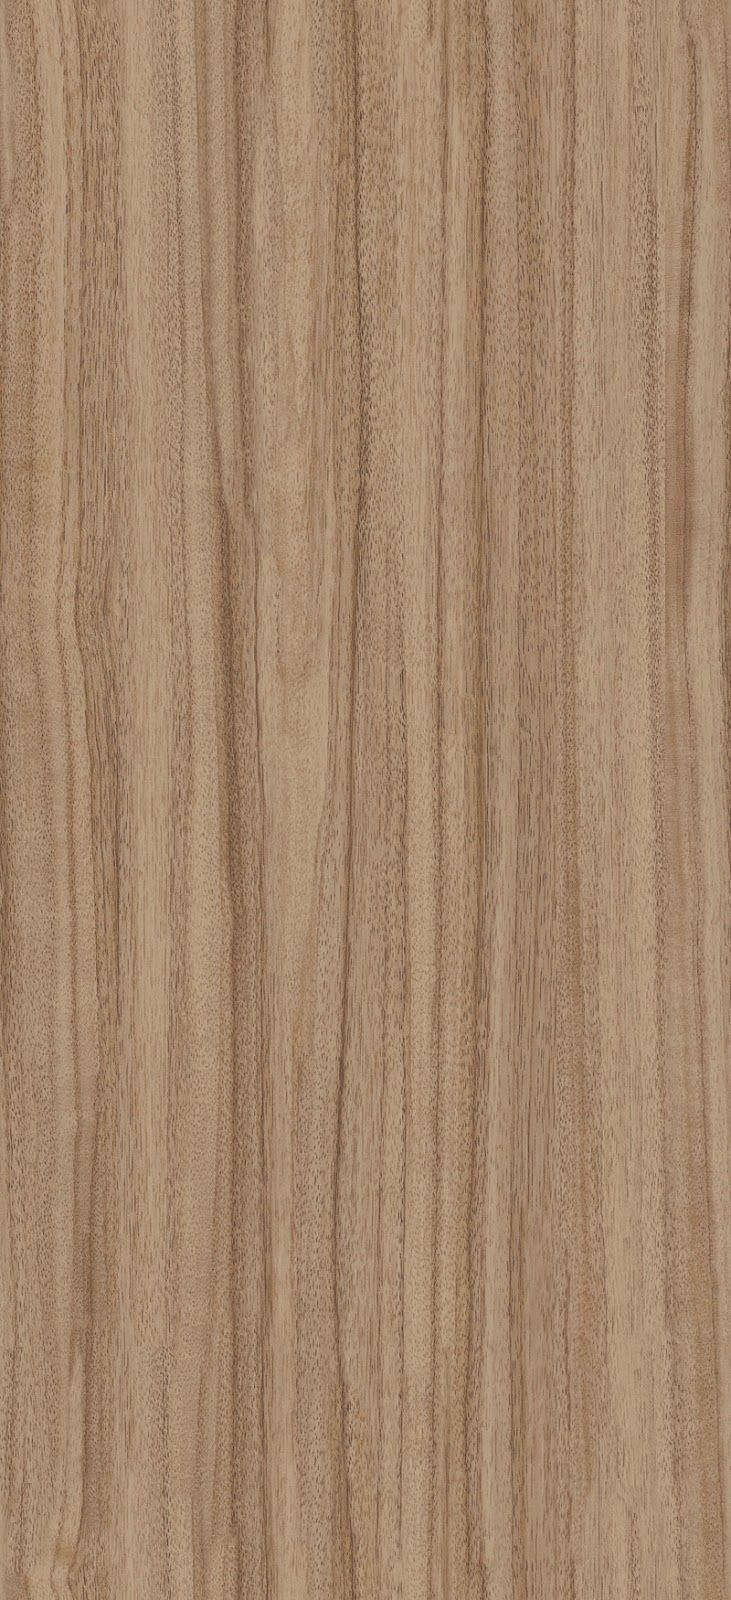 texturise: Seamless French Walnut Wood Texture